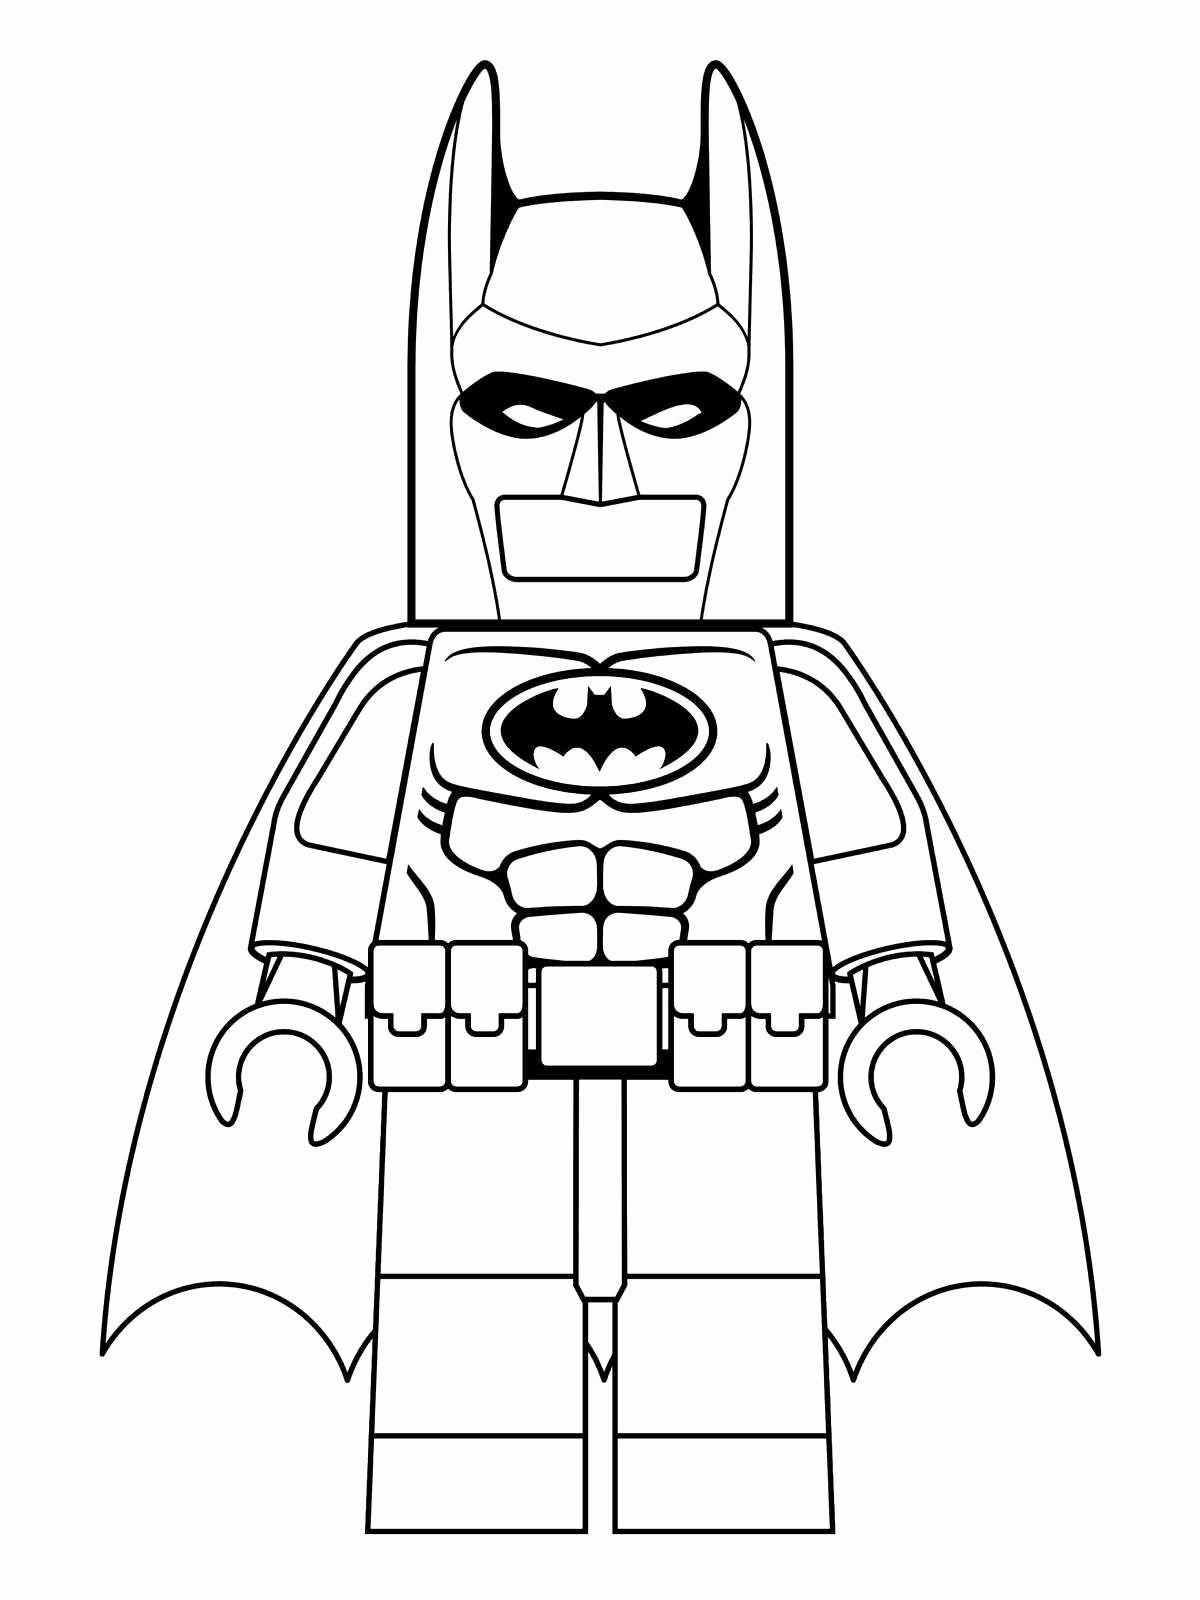 Lego Superhero Printable Coloring Pages For Kids Lego Movie Coloring Pages Lego Coloring Pages Superhero Coloring